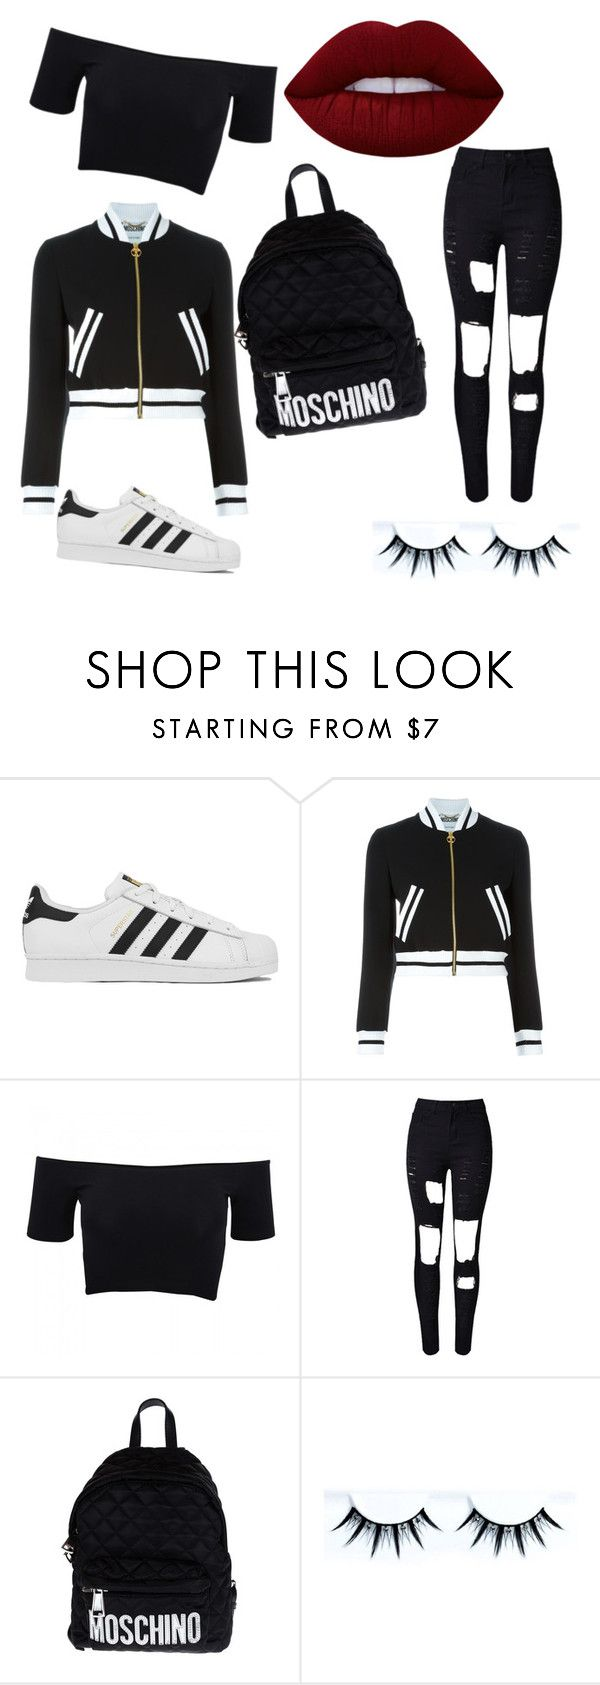 """Untitled #1"" by vanessa-johansson ❤ liked on Polyvore featuring adidas, Moschino, American Apparel and Lime Crime"